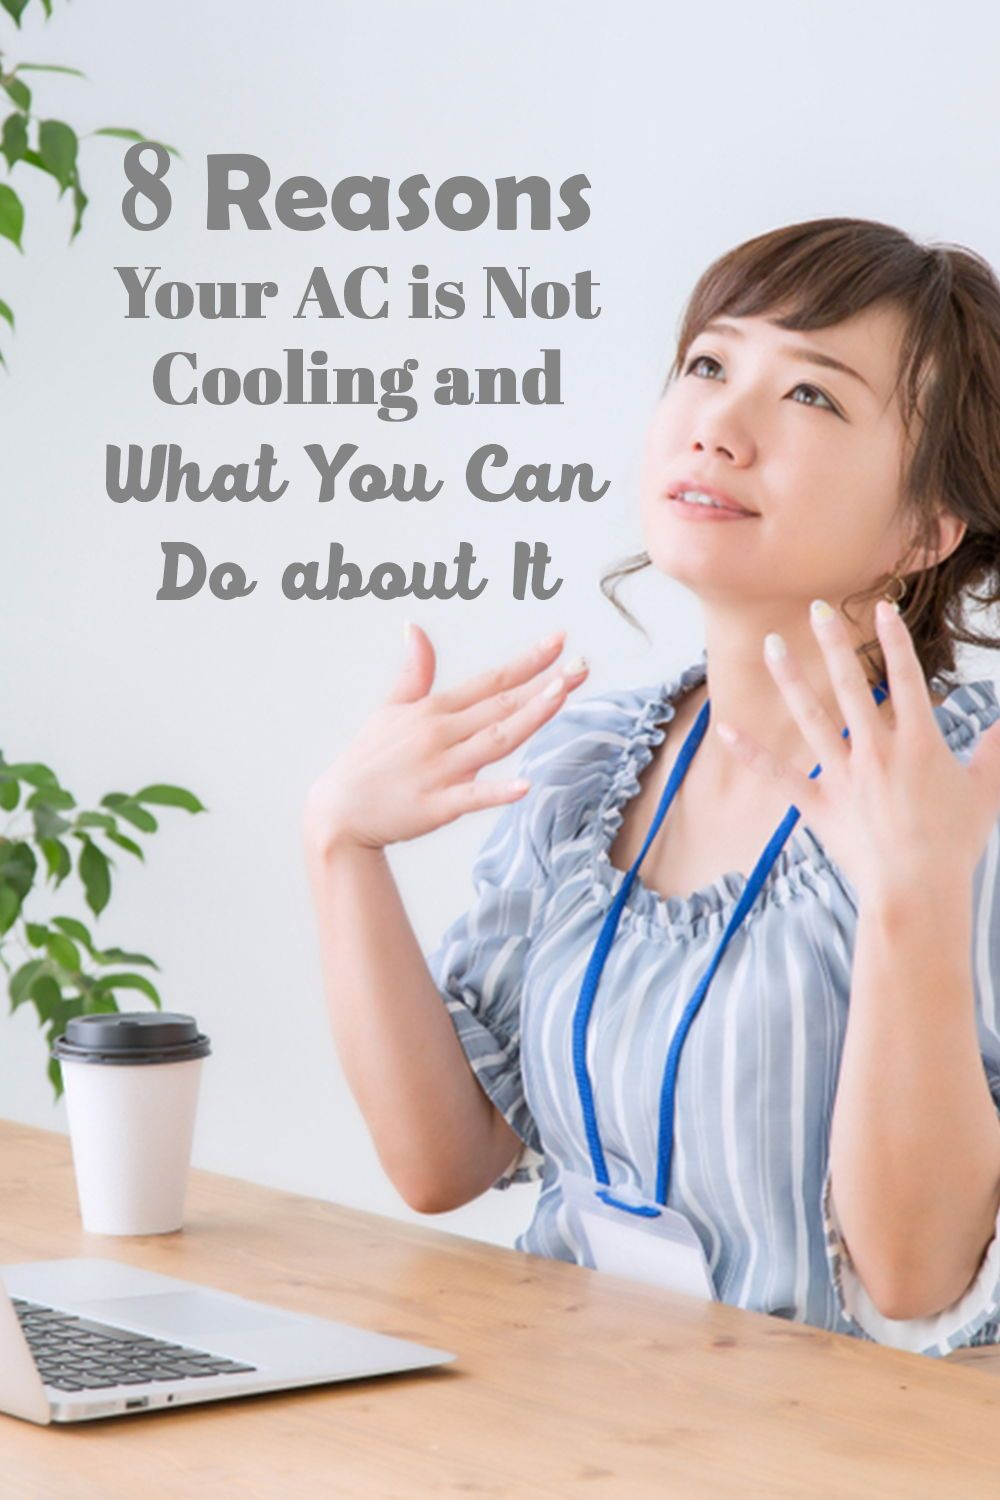 8 Reasons Your Ac Is Not Cooling And What You Can Do About It